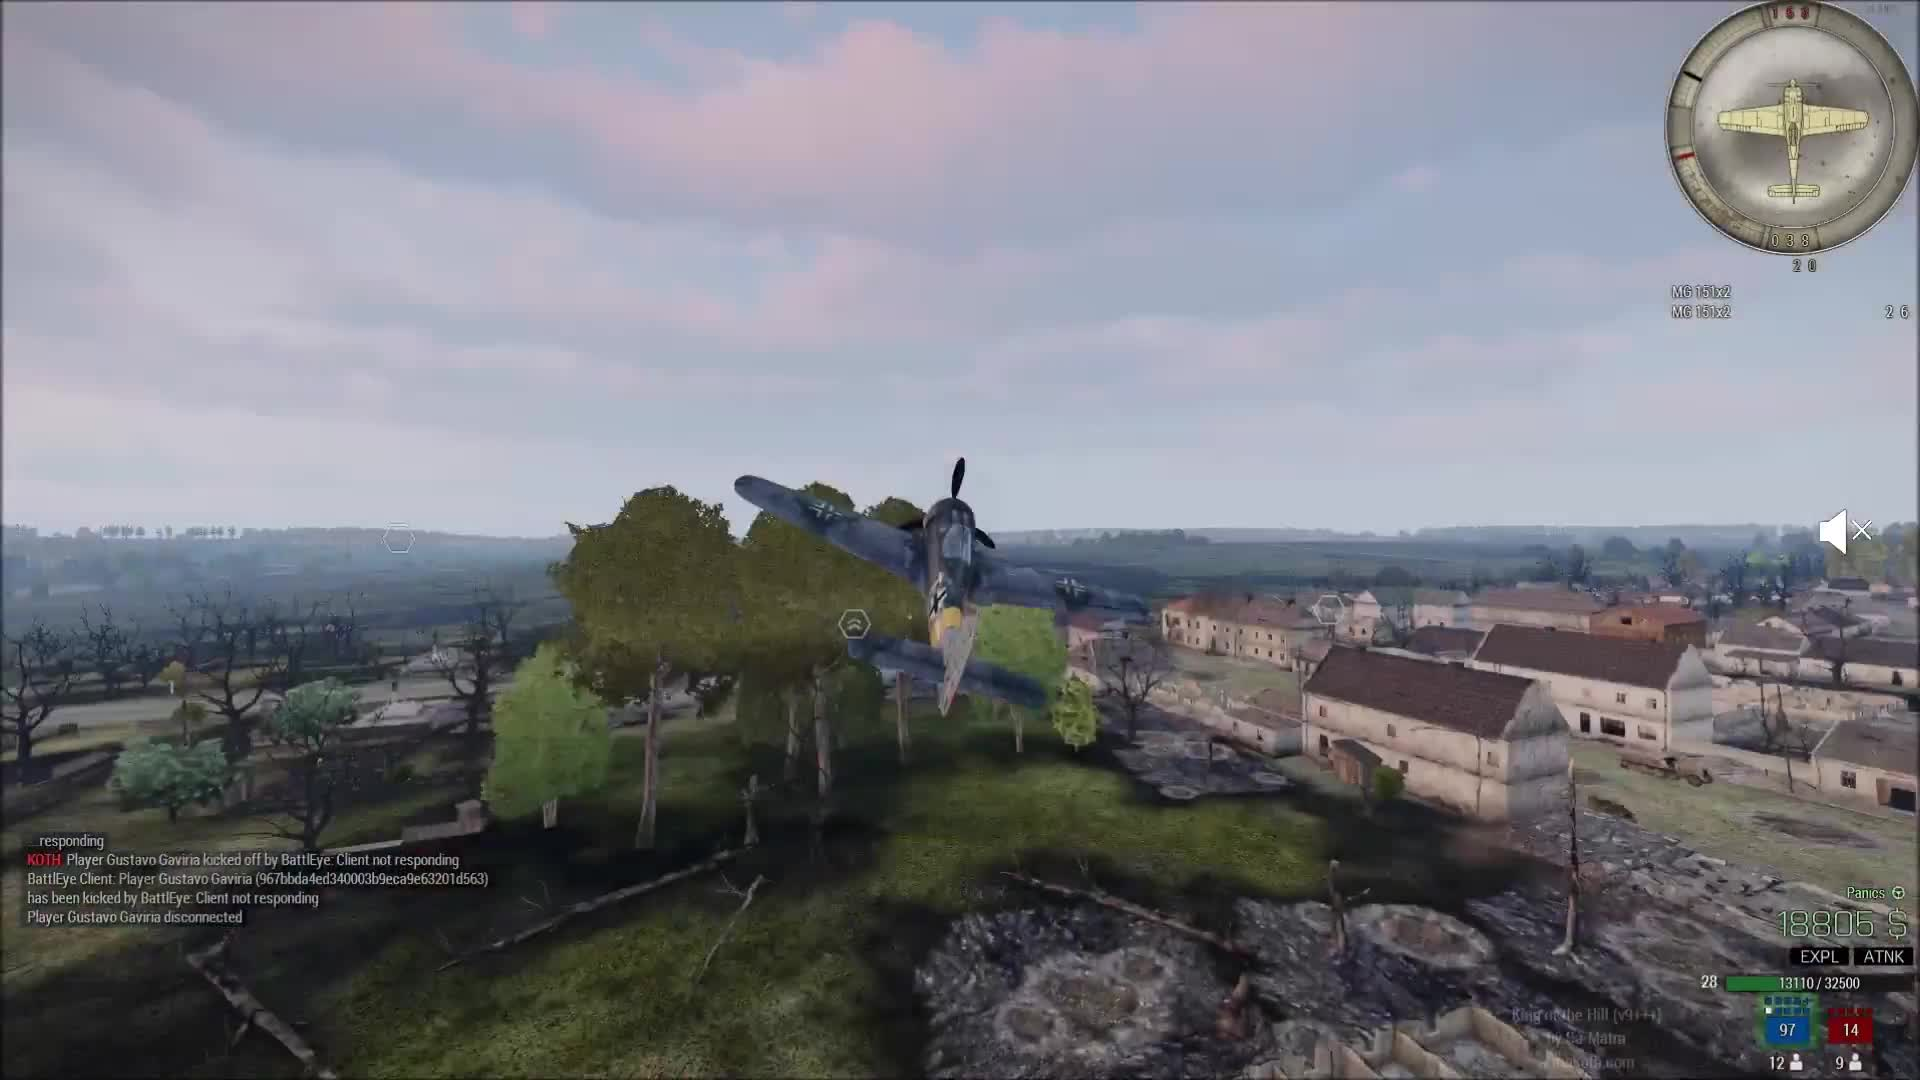 1944, Arma, Arma 3, Flying, Iron Front, KOTH, Panics, Plane, Shooter, WW2, Perfect landing! GIFs